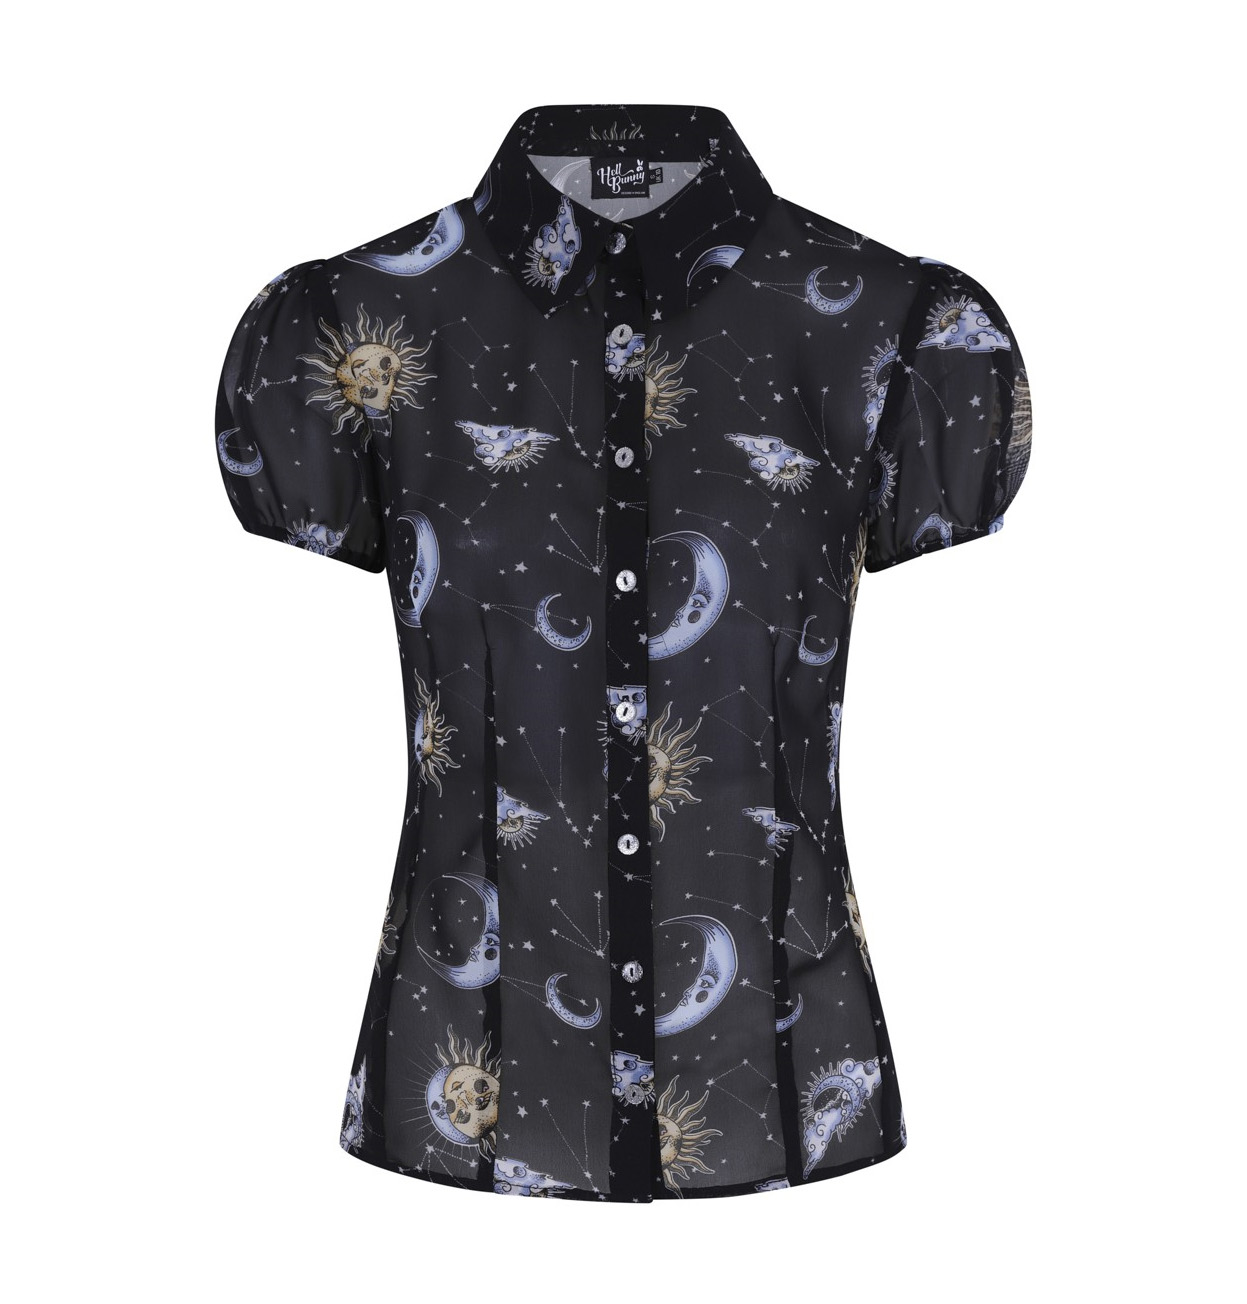 Hell-Bunny-50s-Shirt-Top-Gothic-Black-Sun-Moon-Stars-SOLARIS-Blouse-All-Sizes thumbnail 11